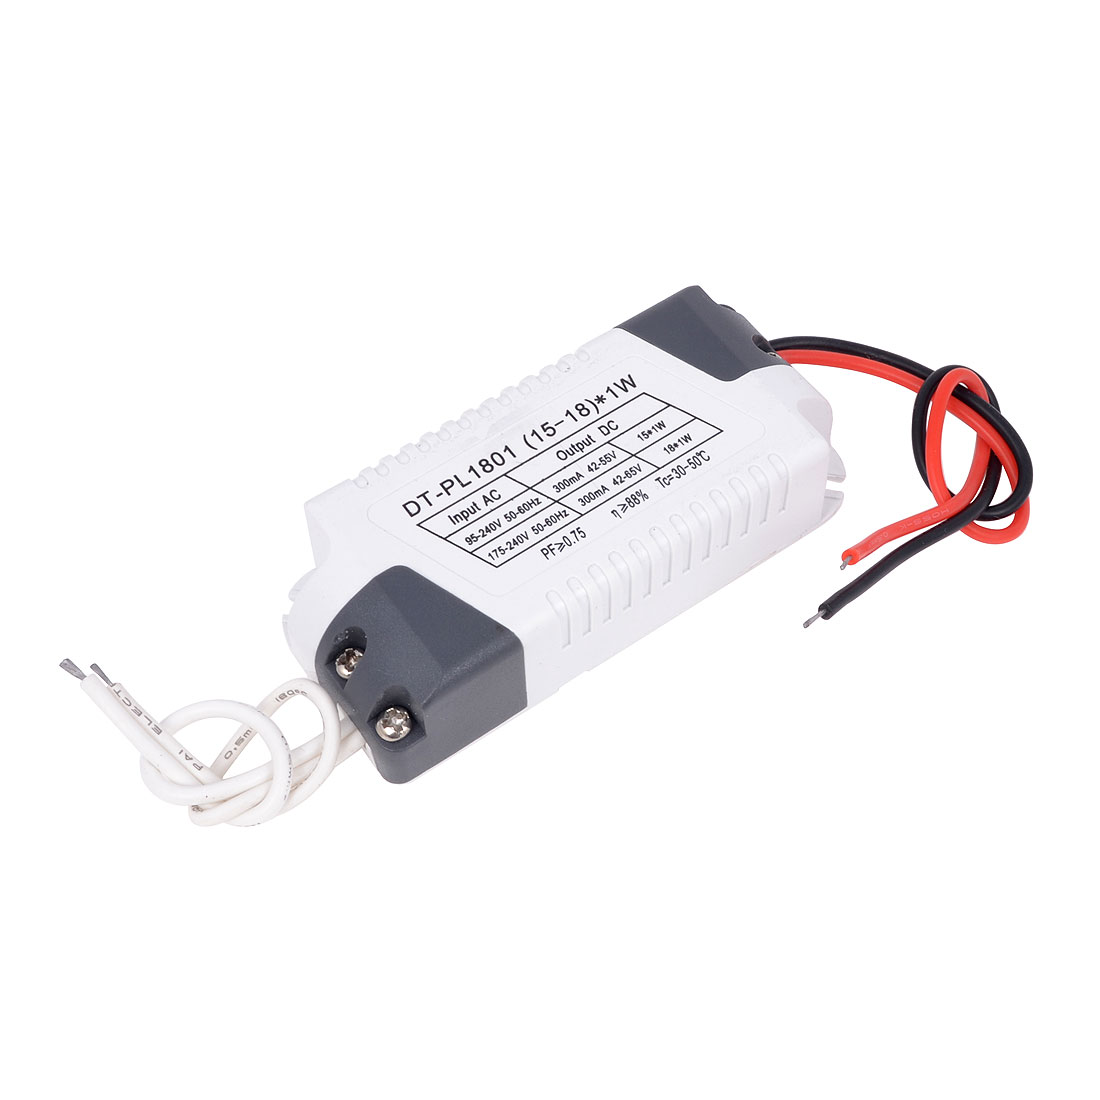 (15-18)x1W Plastic LED Driver Circuit Transformer Power Supply